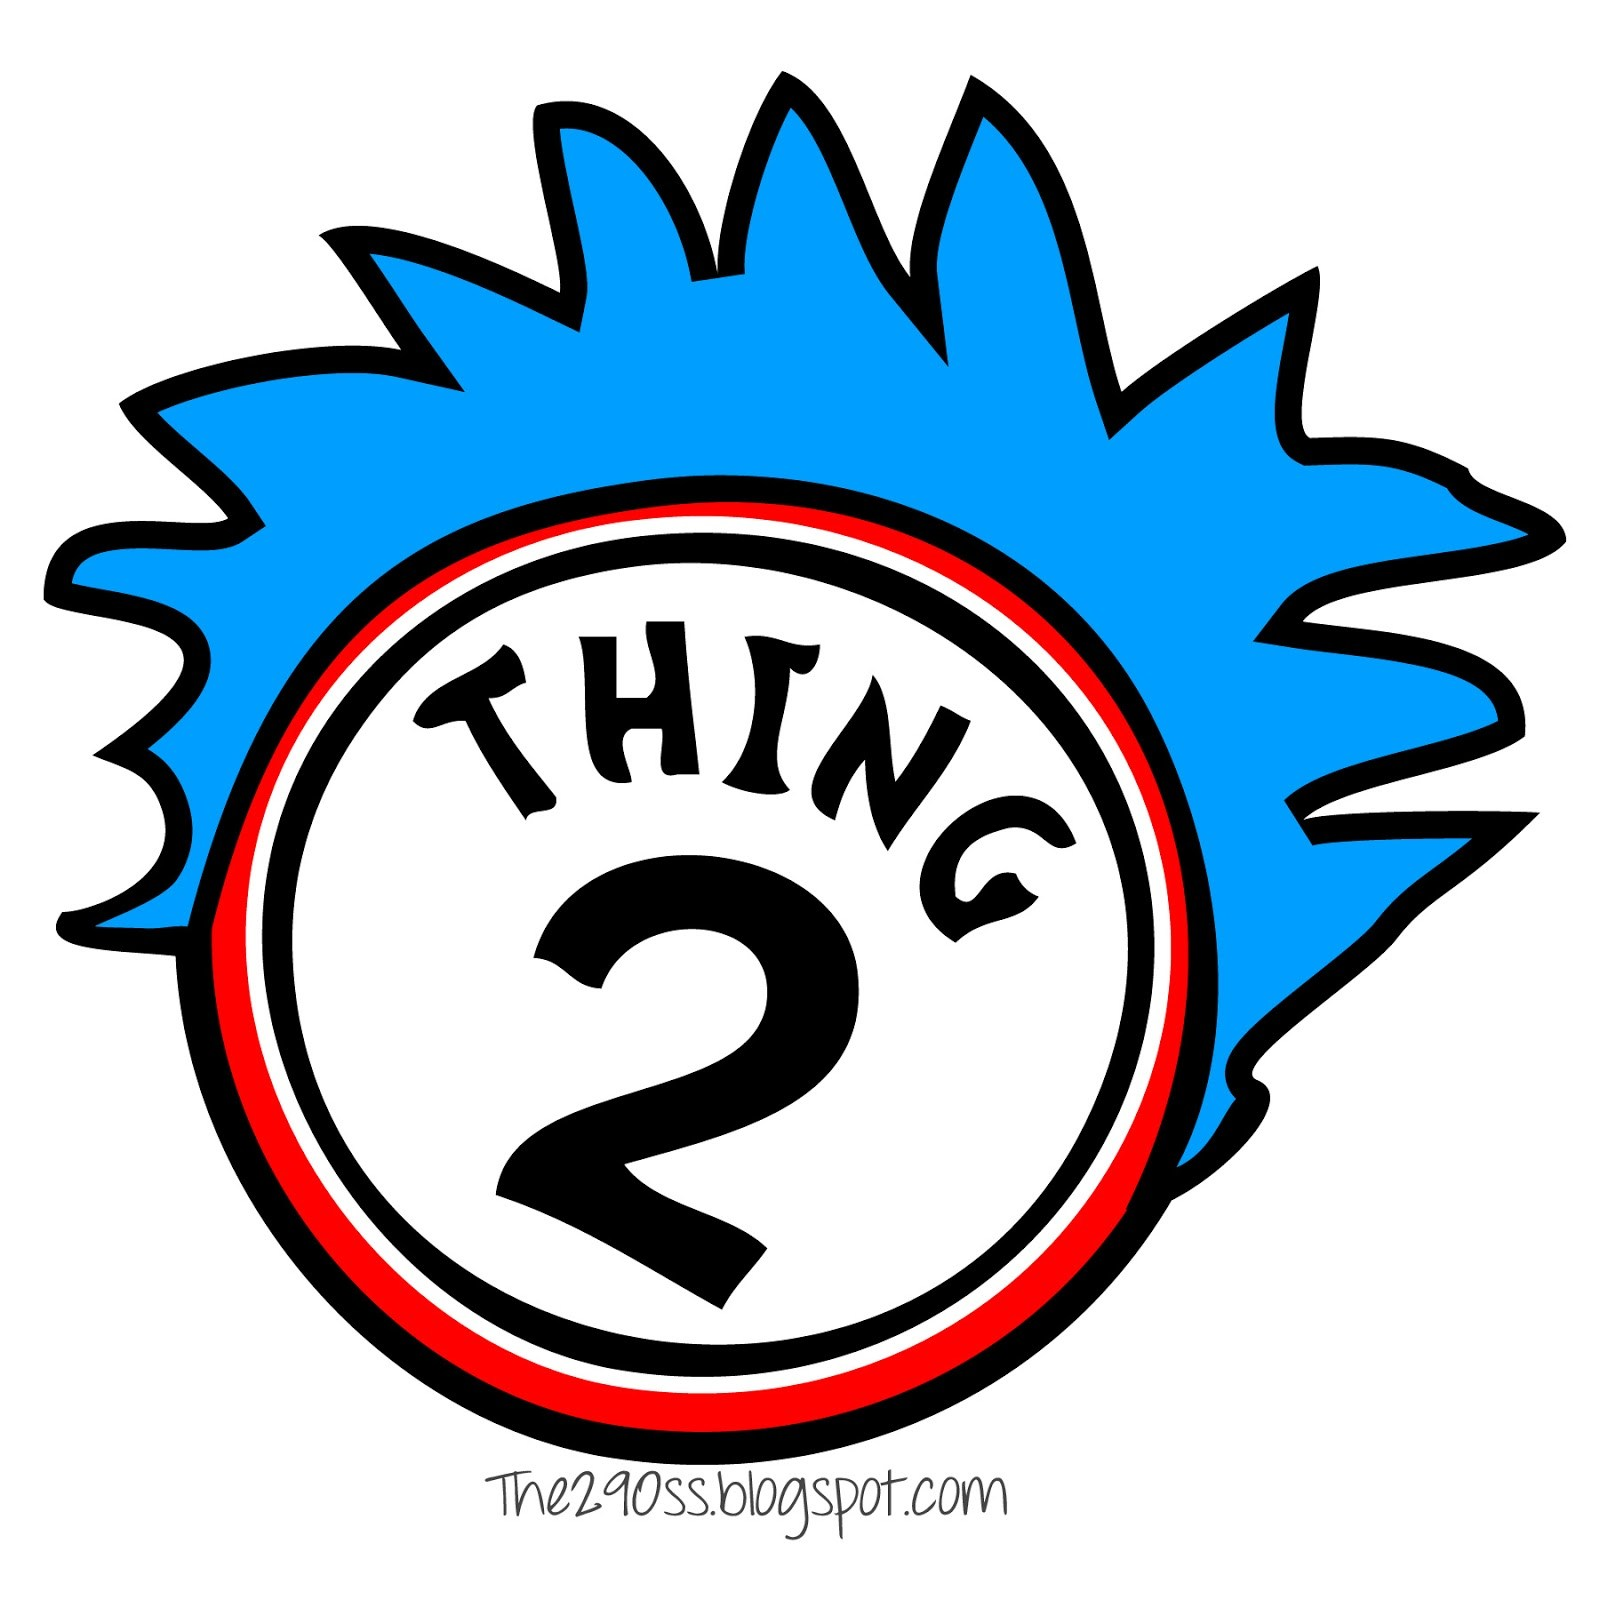 Thing 2 clipart 1 » Clipart Portal.